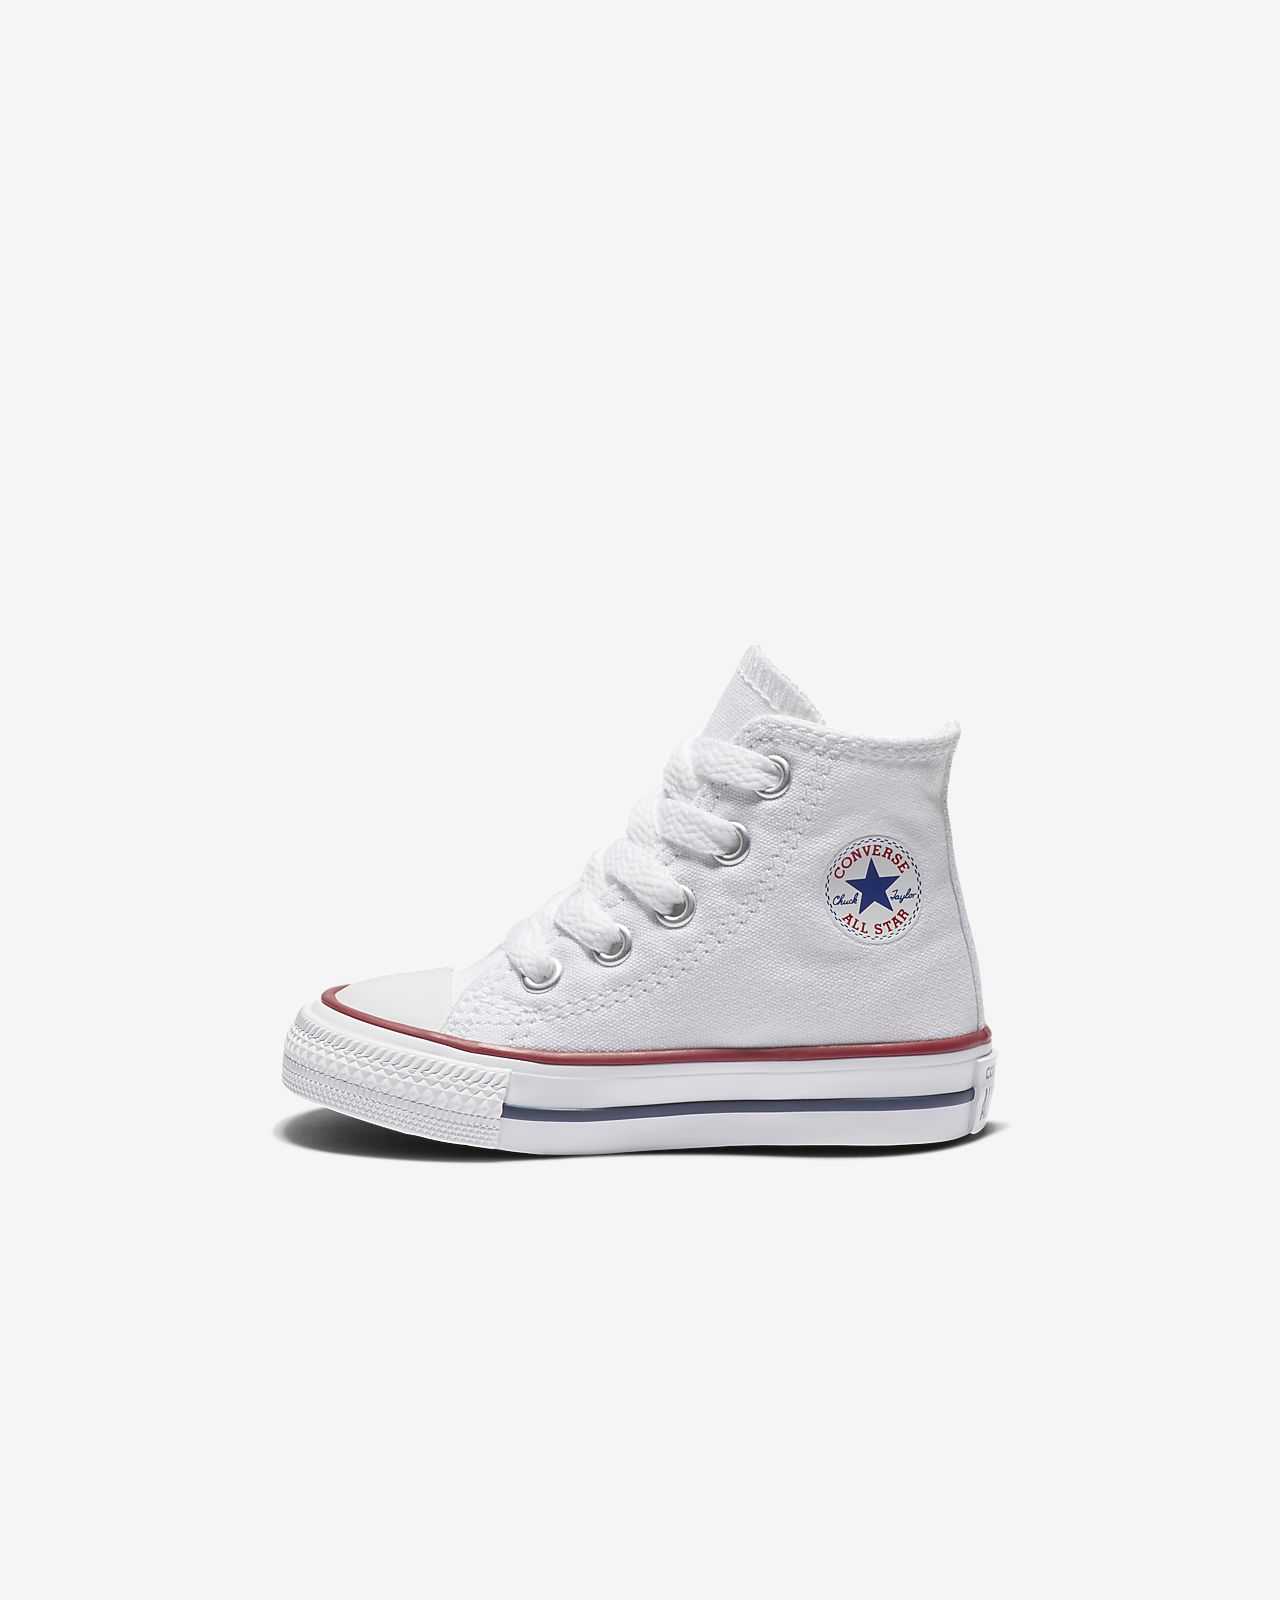 97bf54622a92 Converse Chuck Taylor All Star High Top (2c-10c) Infant Toddler Shoe ...